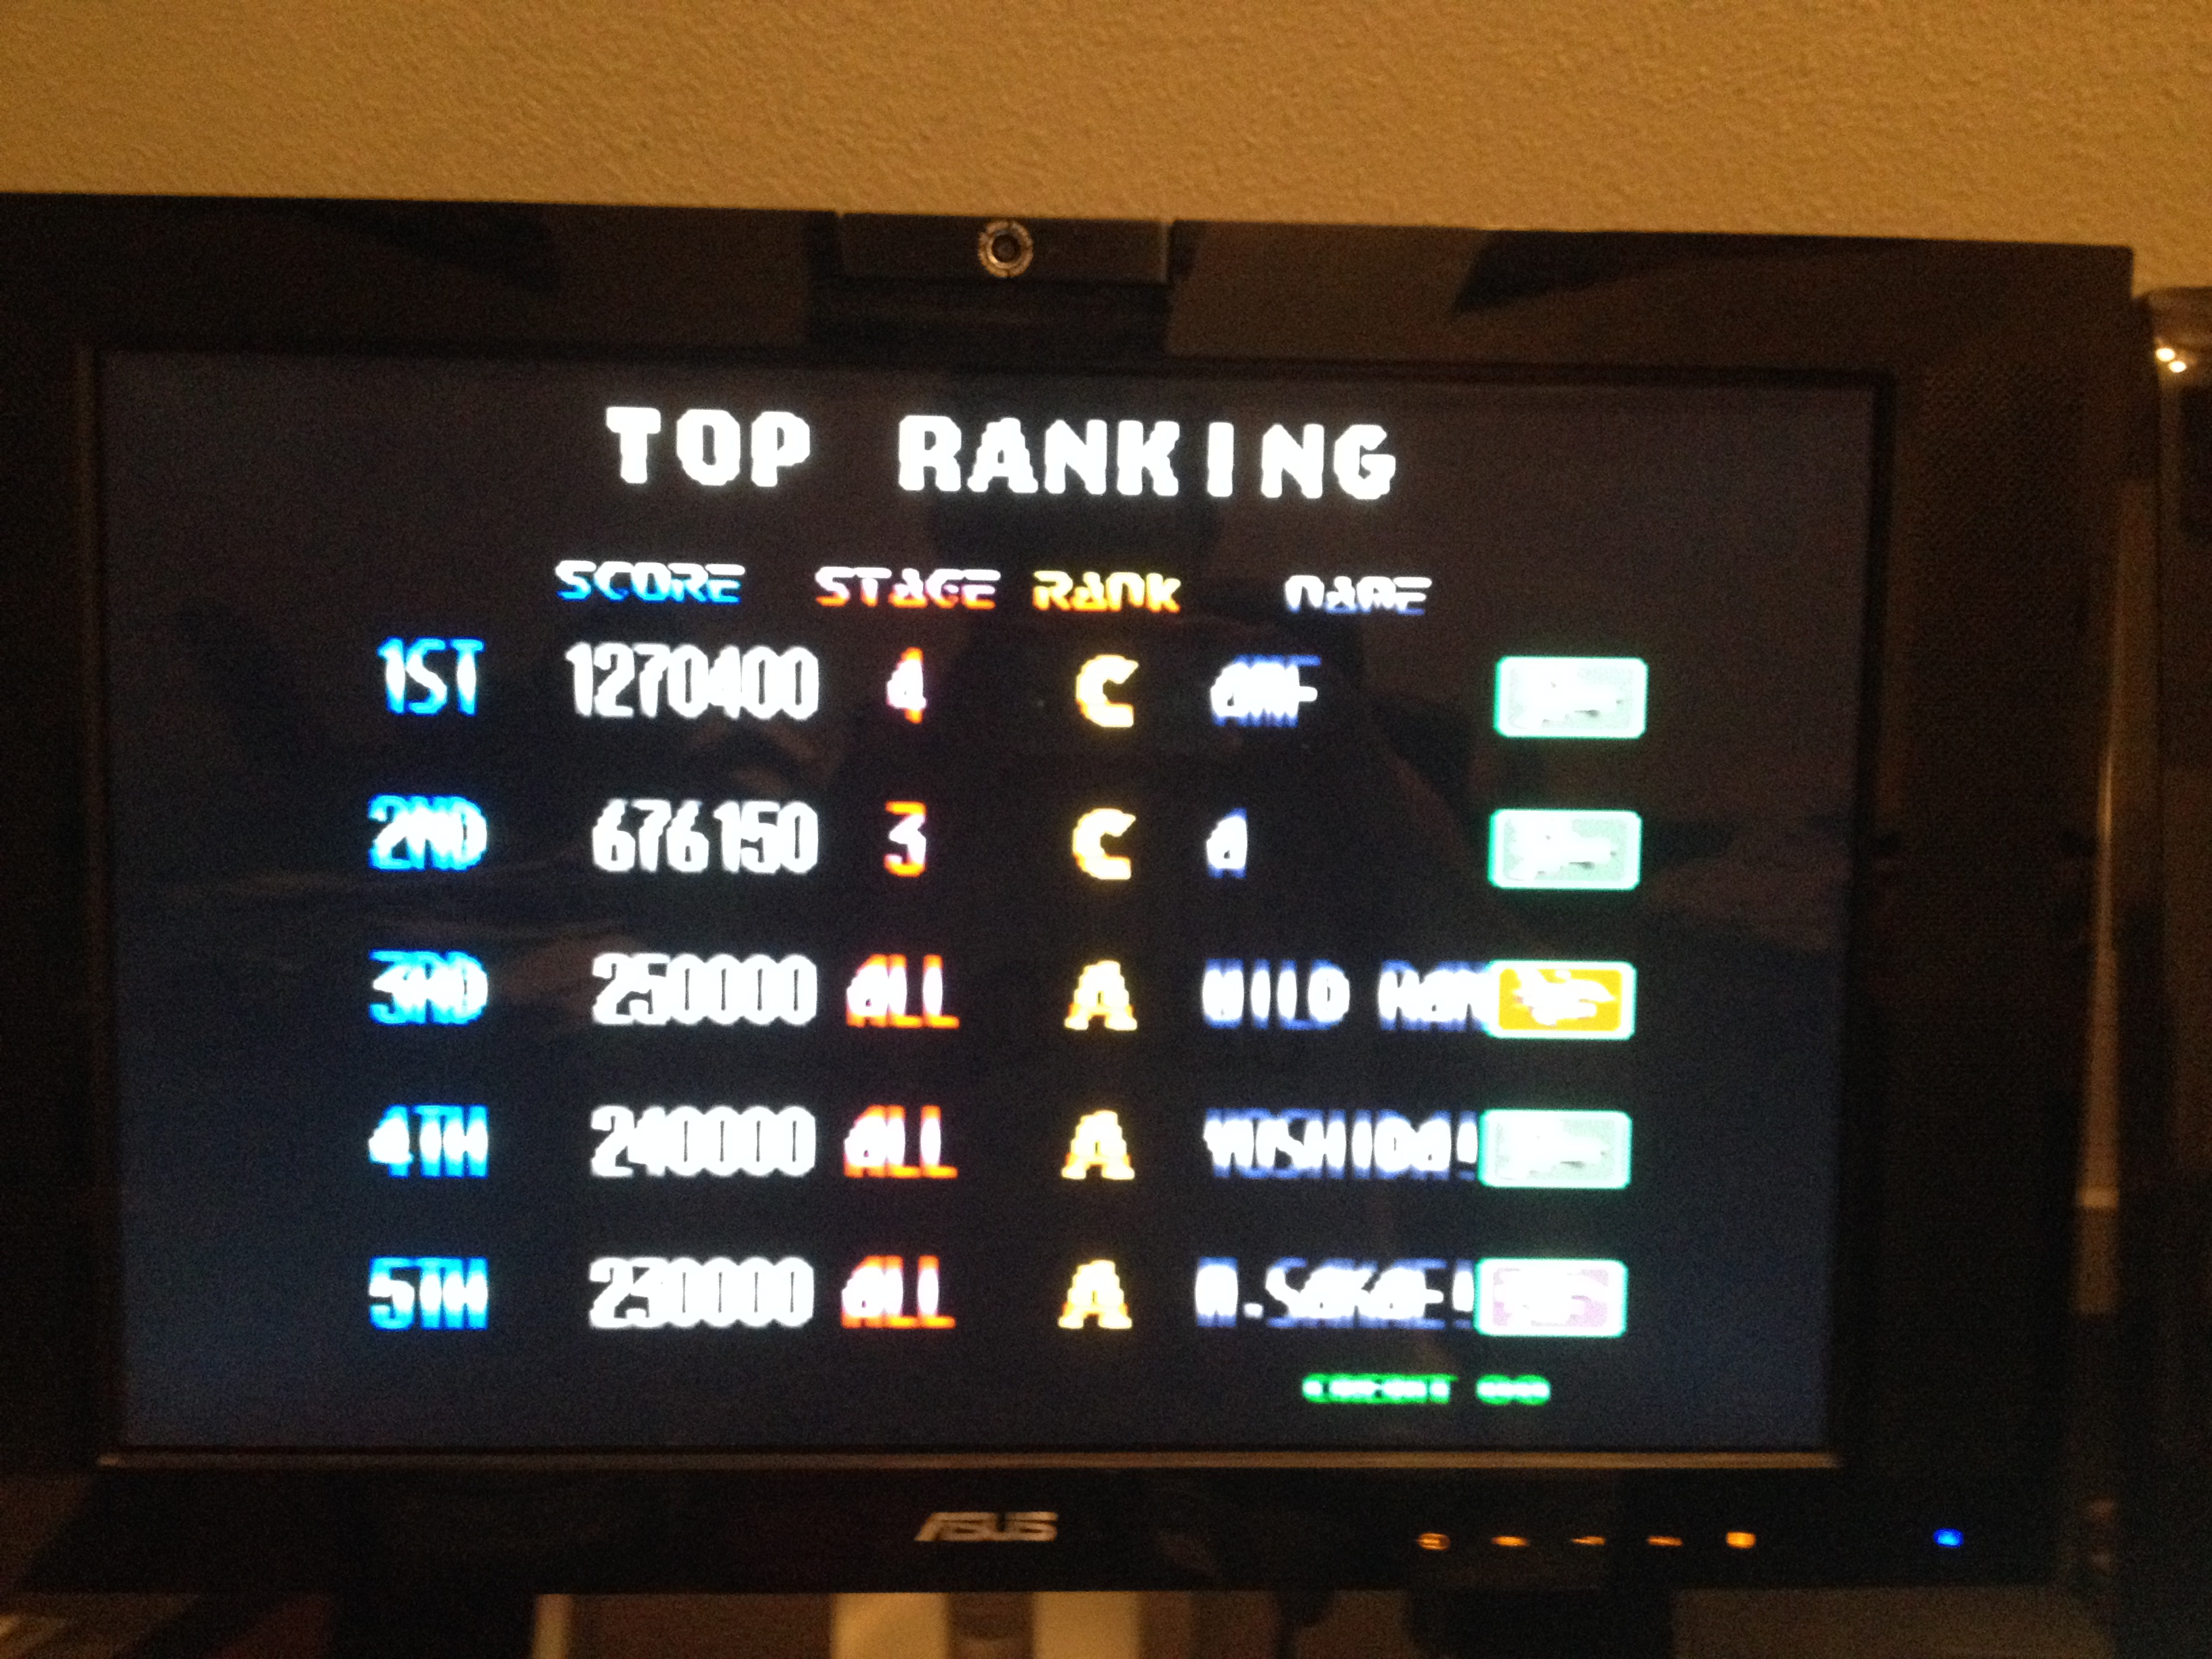 Blazing Star 1,270,400 points